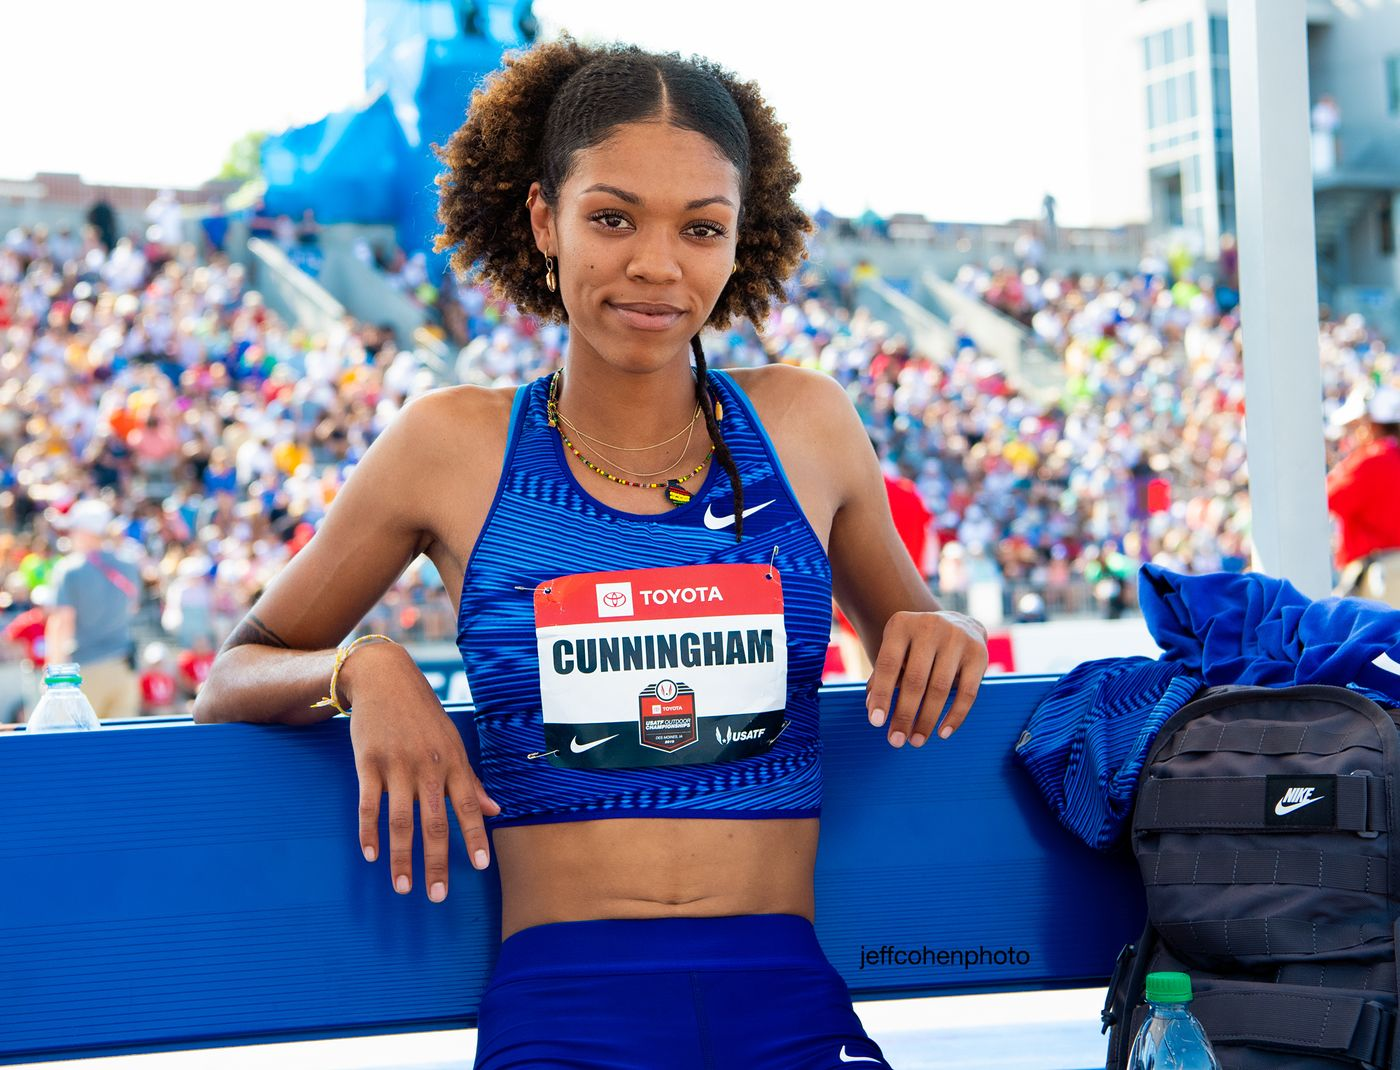 cunningham-hjw-2019-USATF-Outdoor-Champs-day-3--3528---jeff-cohen-photo--web.jpg